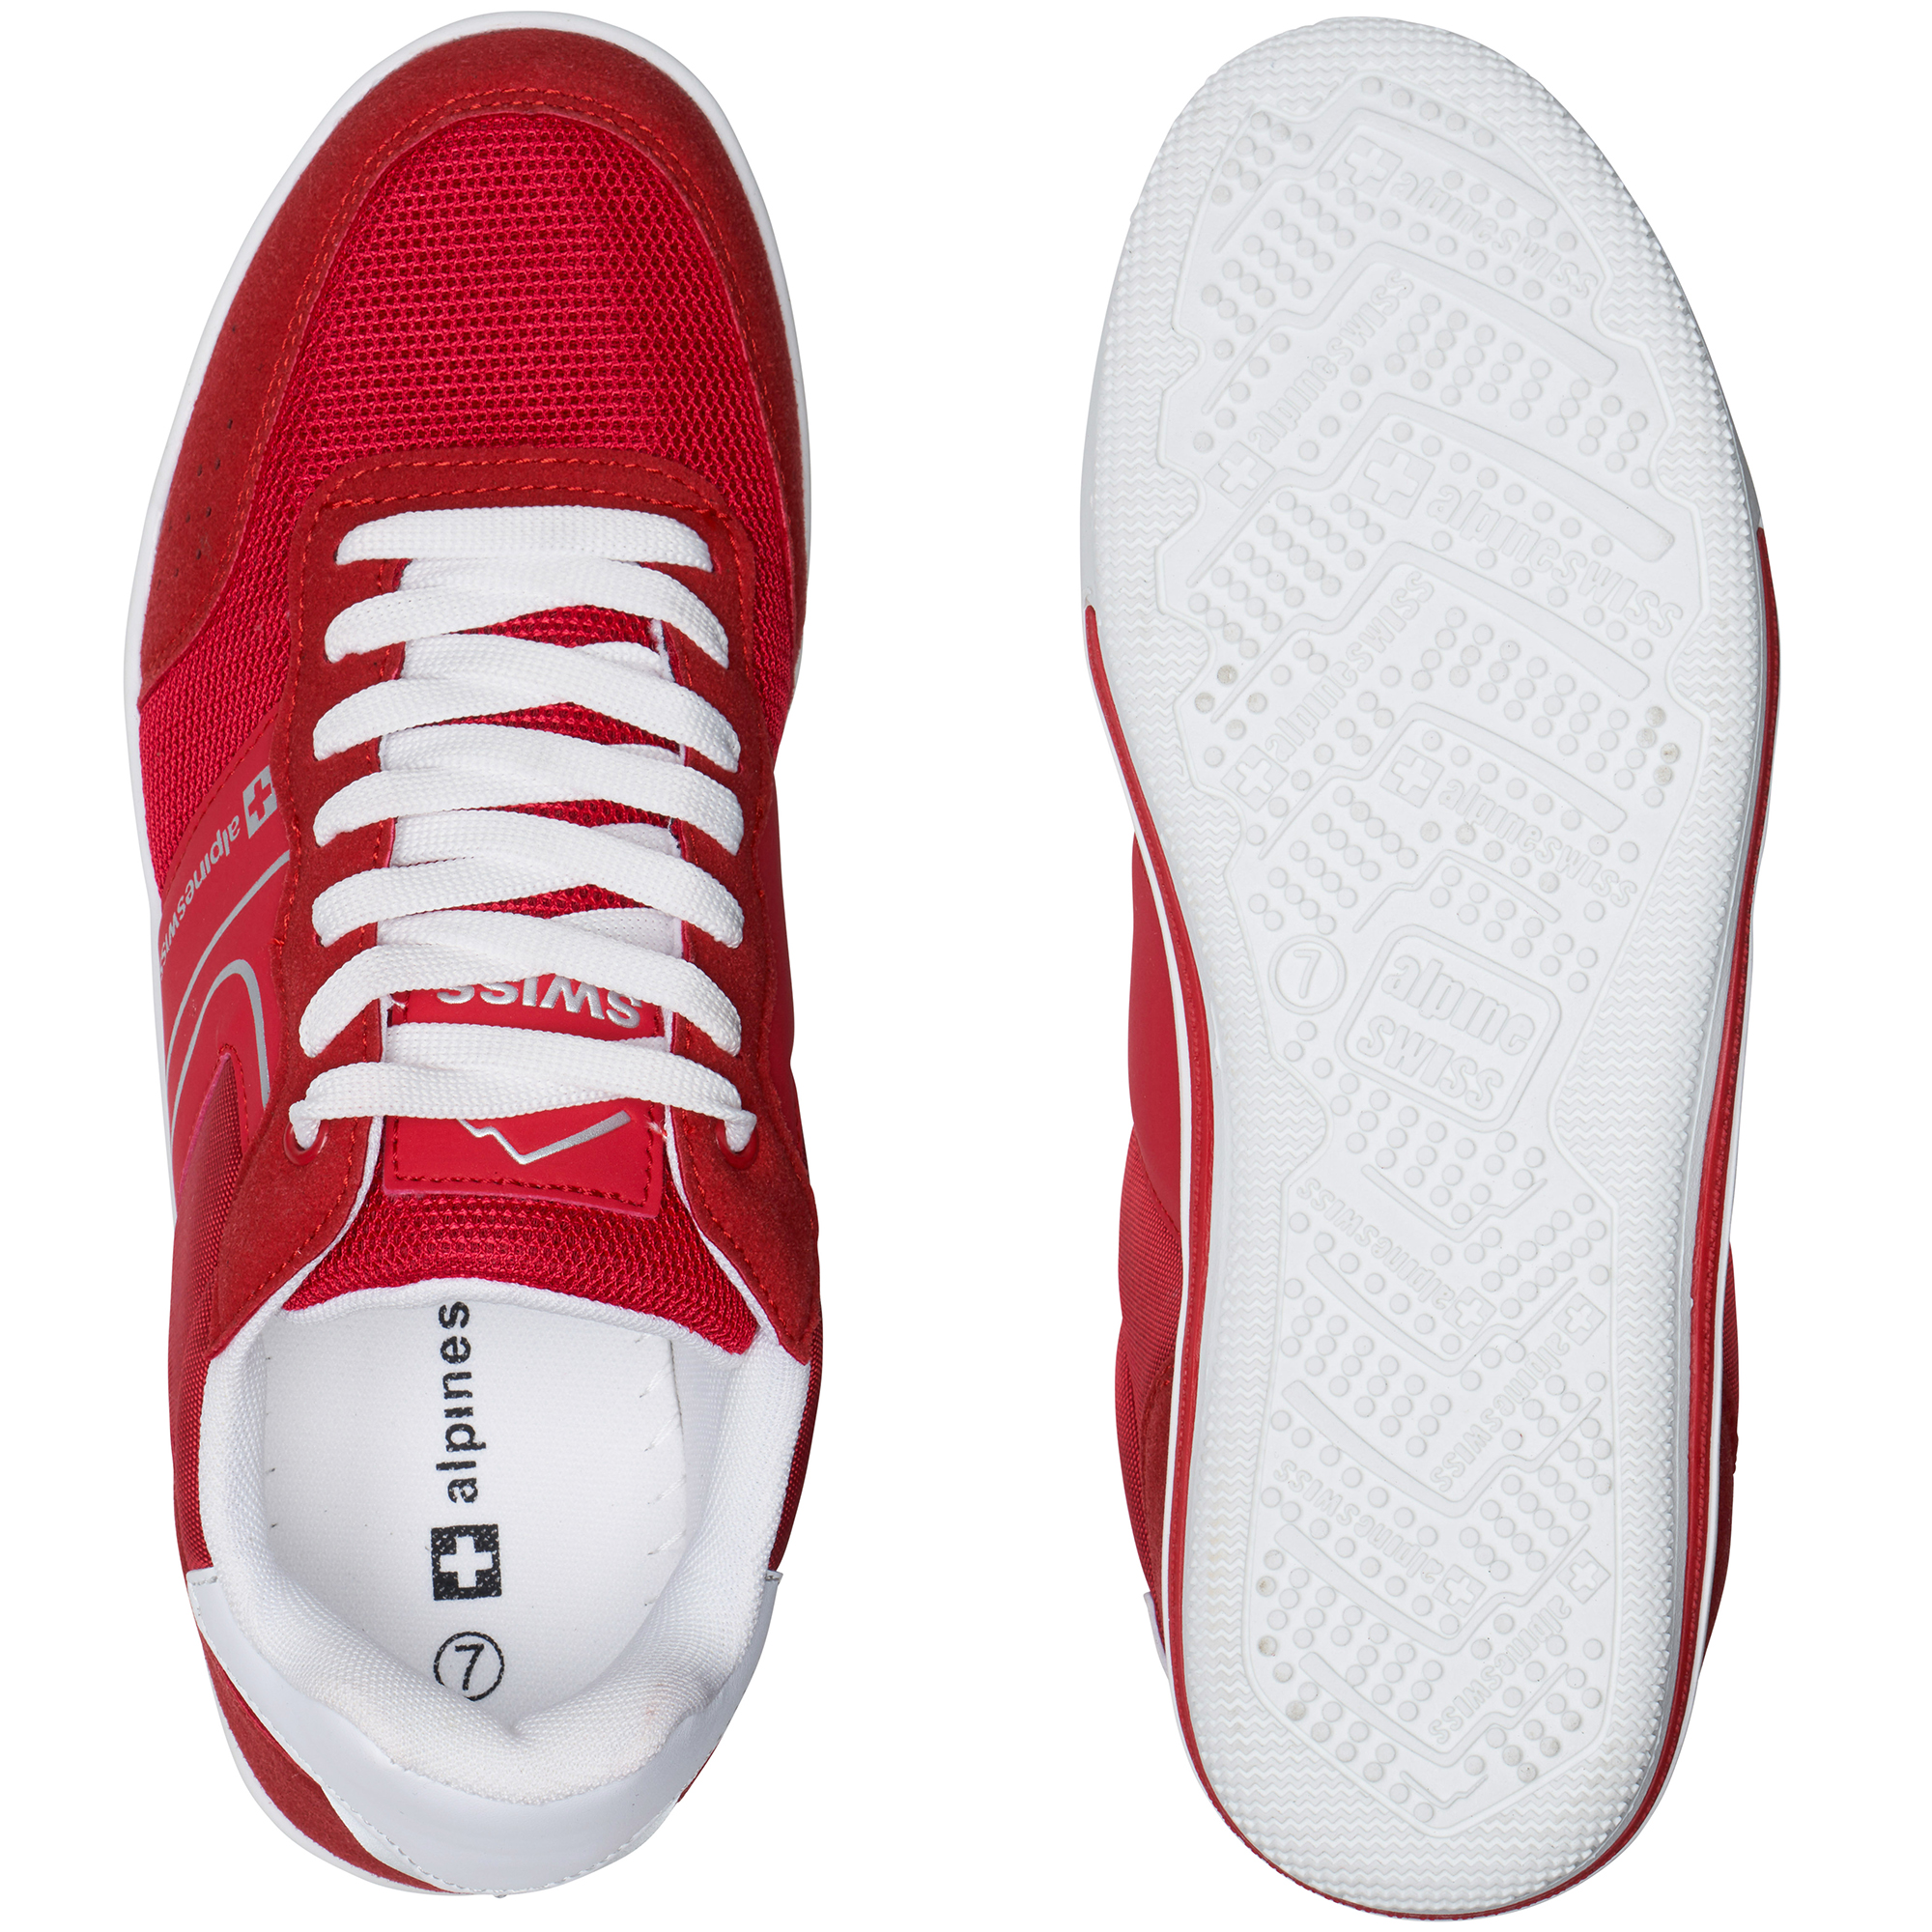 Alpine-Swiss-Liam-Mens-Fashion-Sneakers-Suede-Trim-Low-Top-Lace-Up-Tennis-Shoes thumbnail 53